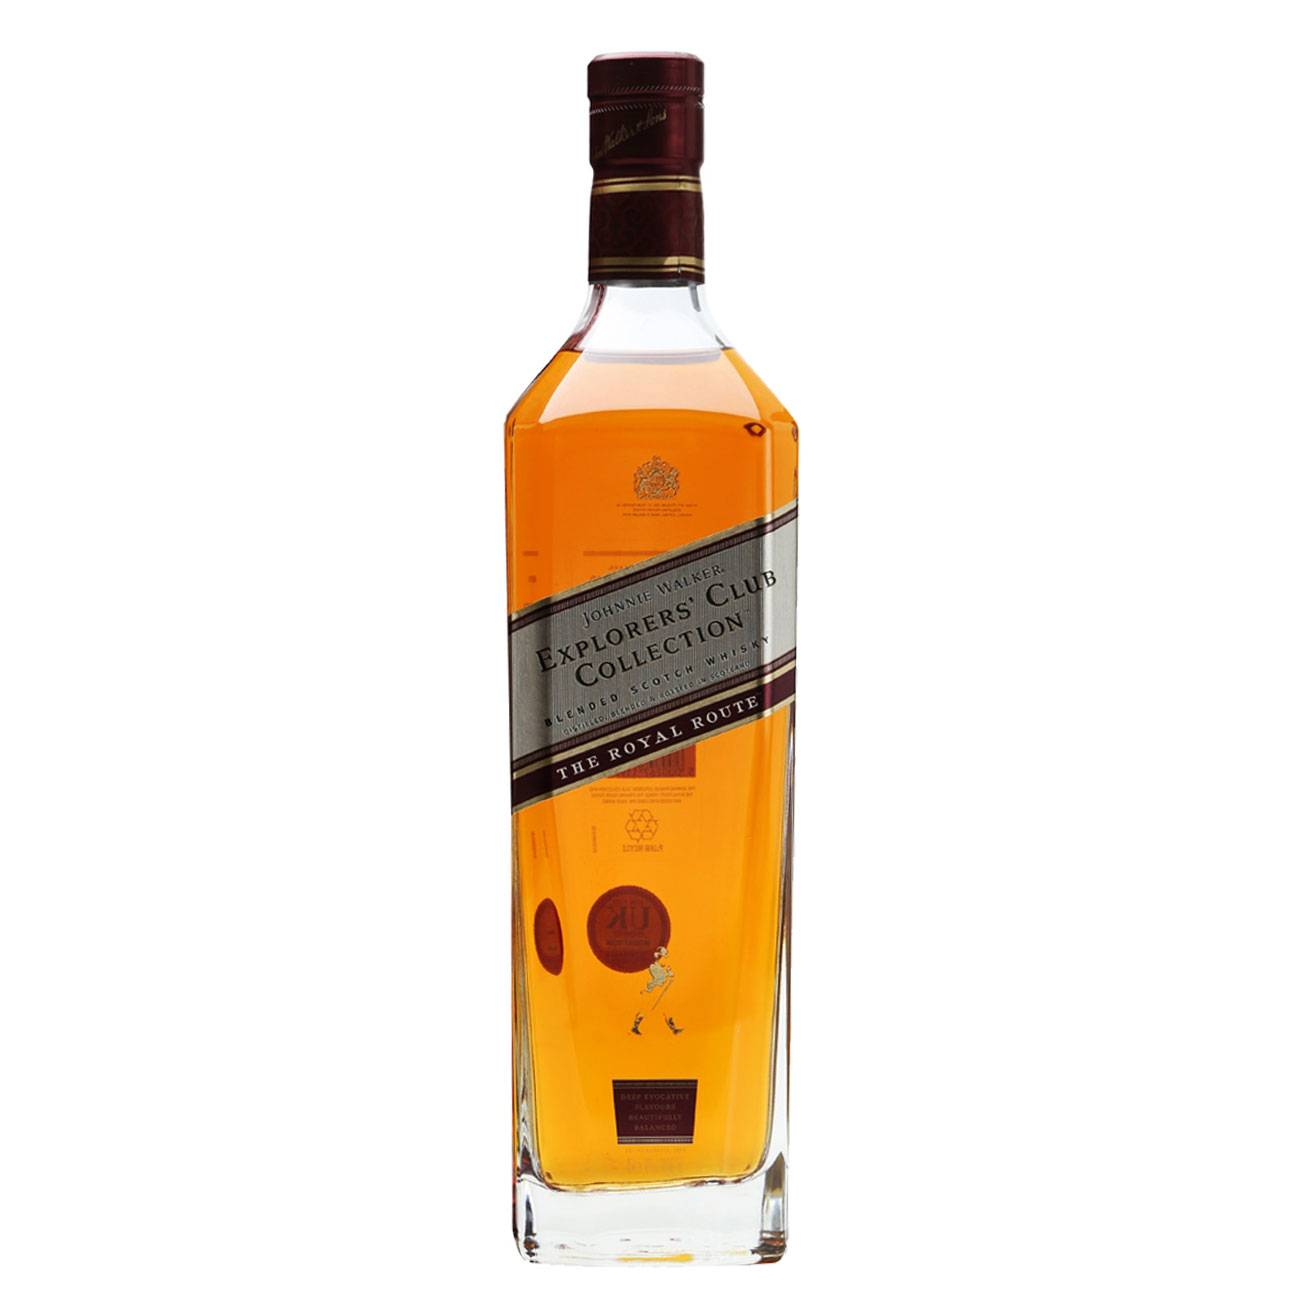 Whisky scotian, EXPLORERS CLUB COLLECTION THE ROYAL ROUTE 1000 ML, Johnnie Walker